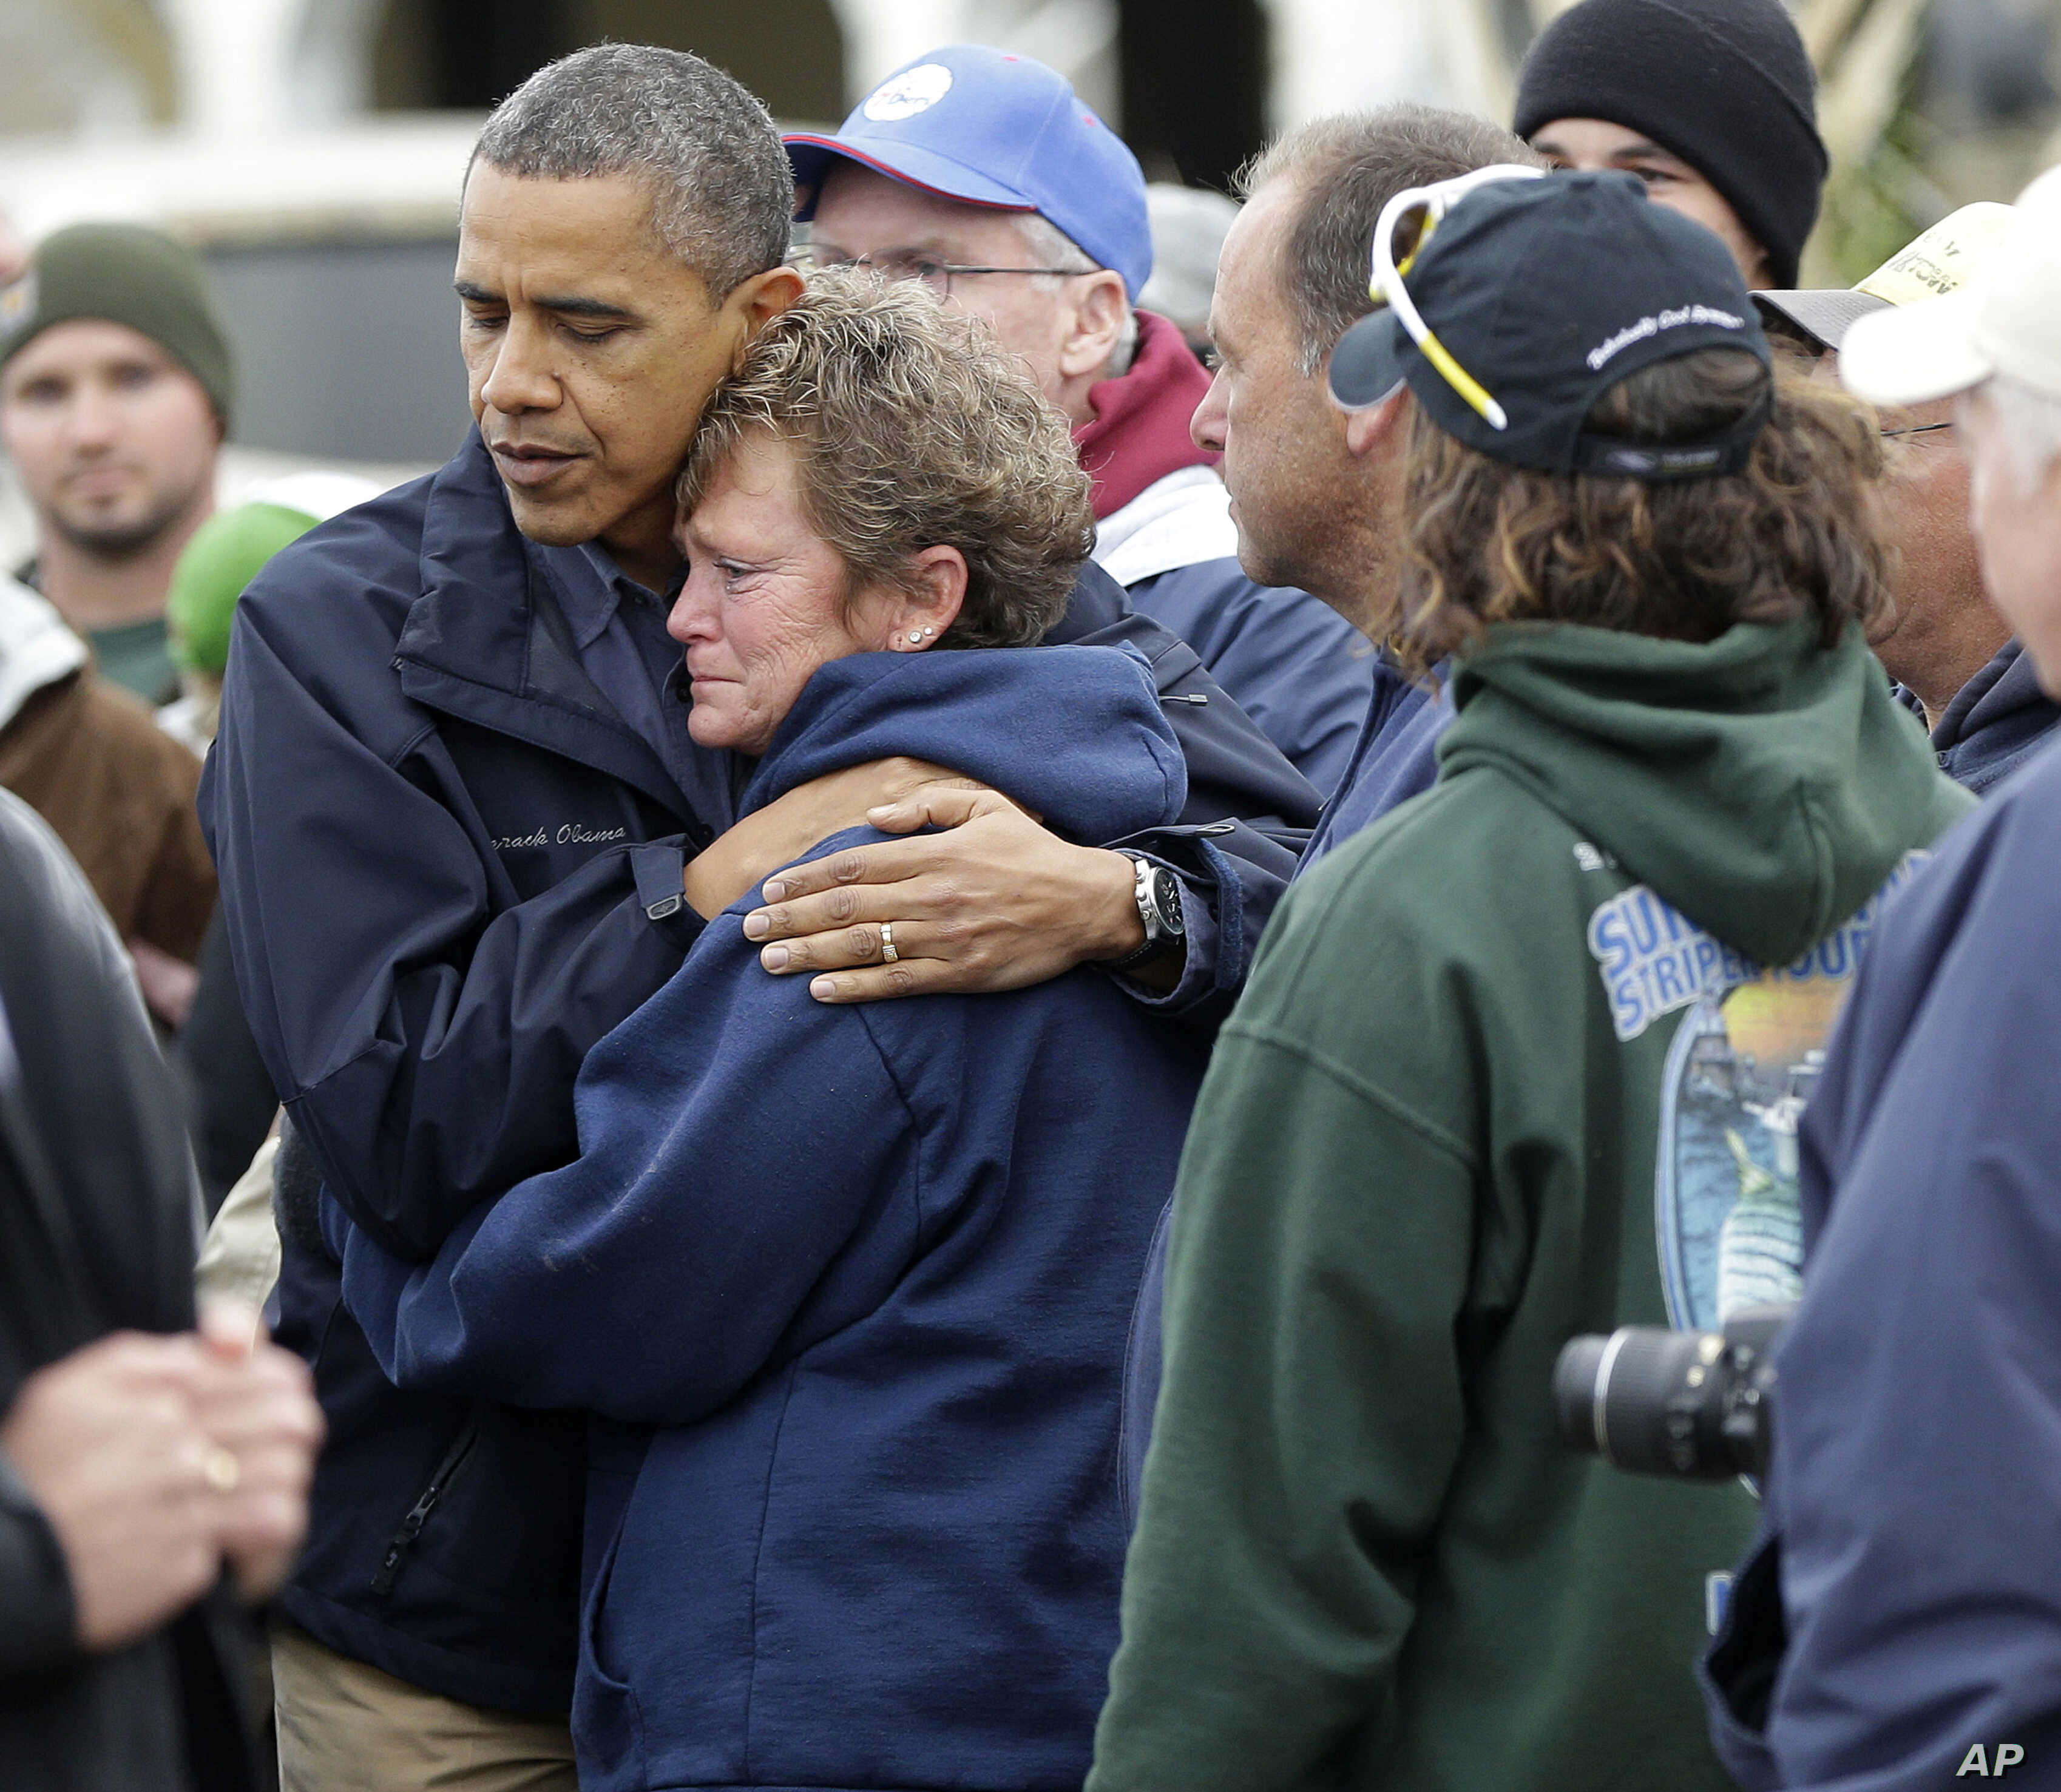 President Barack Obama, left, embraces Donna Vanzant, right, during a tour of a neighborhood effected by superstorm Sandy, Oct. 31, 2012 in Brigantine, N.J.